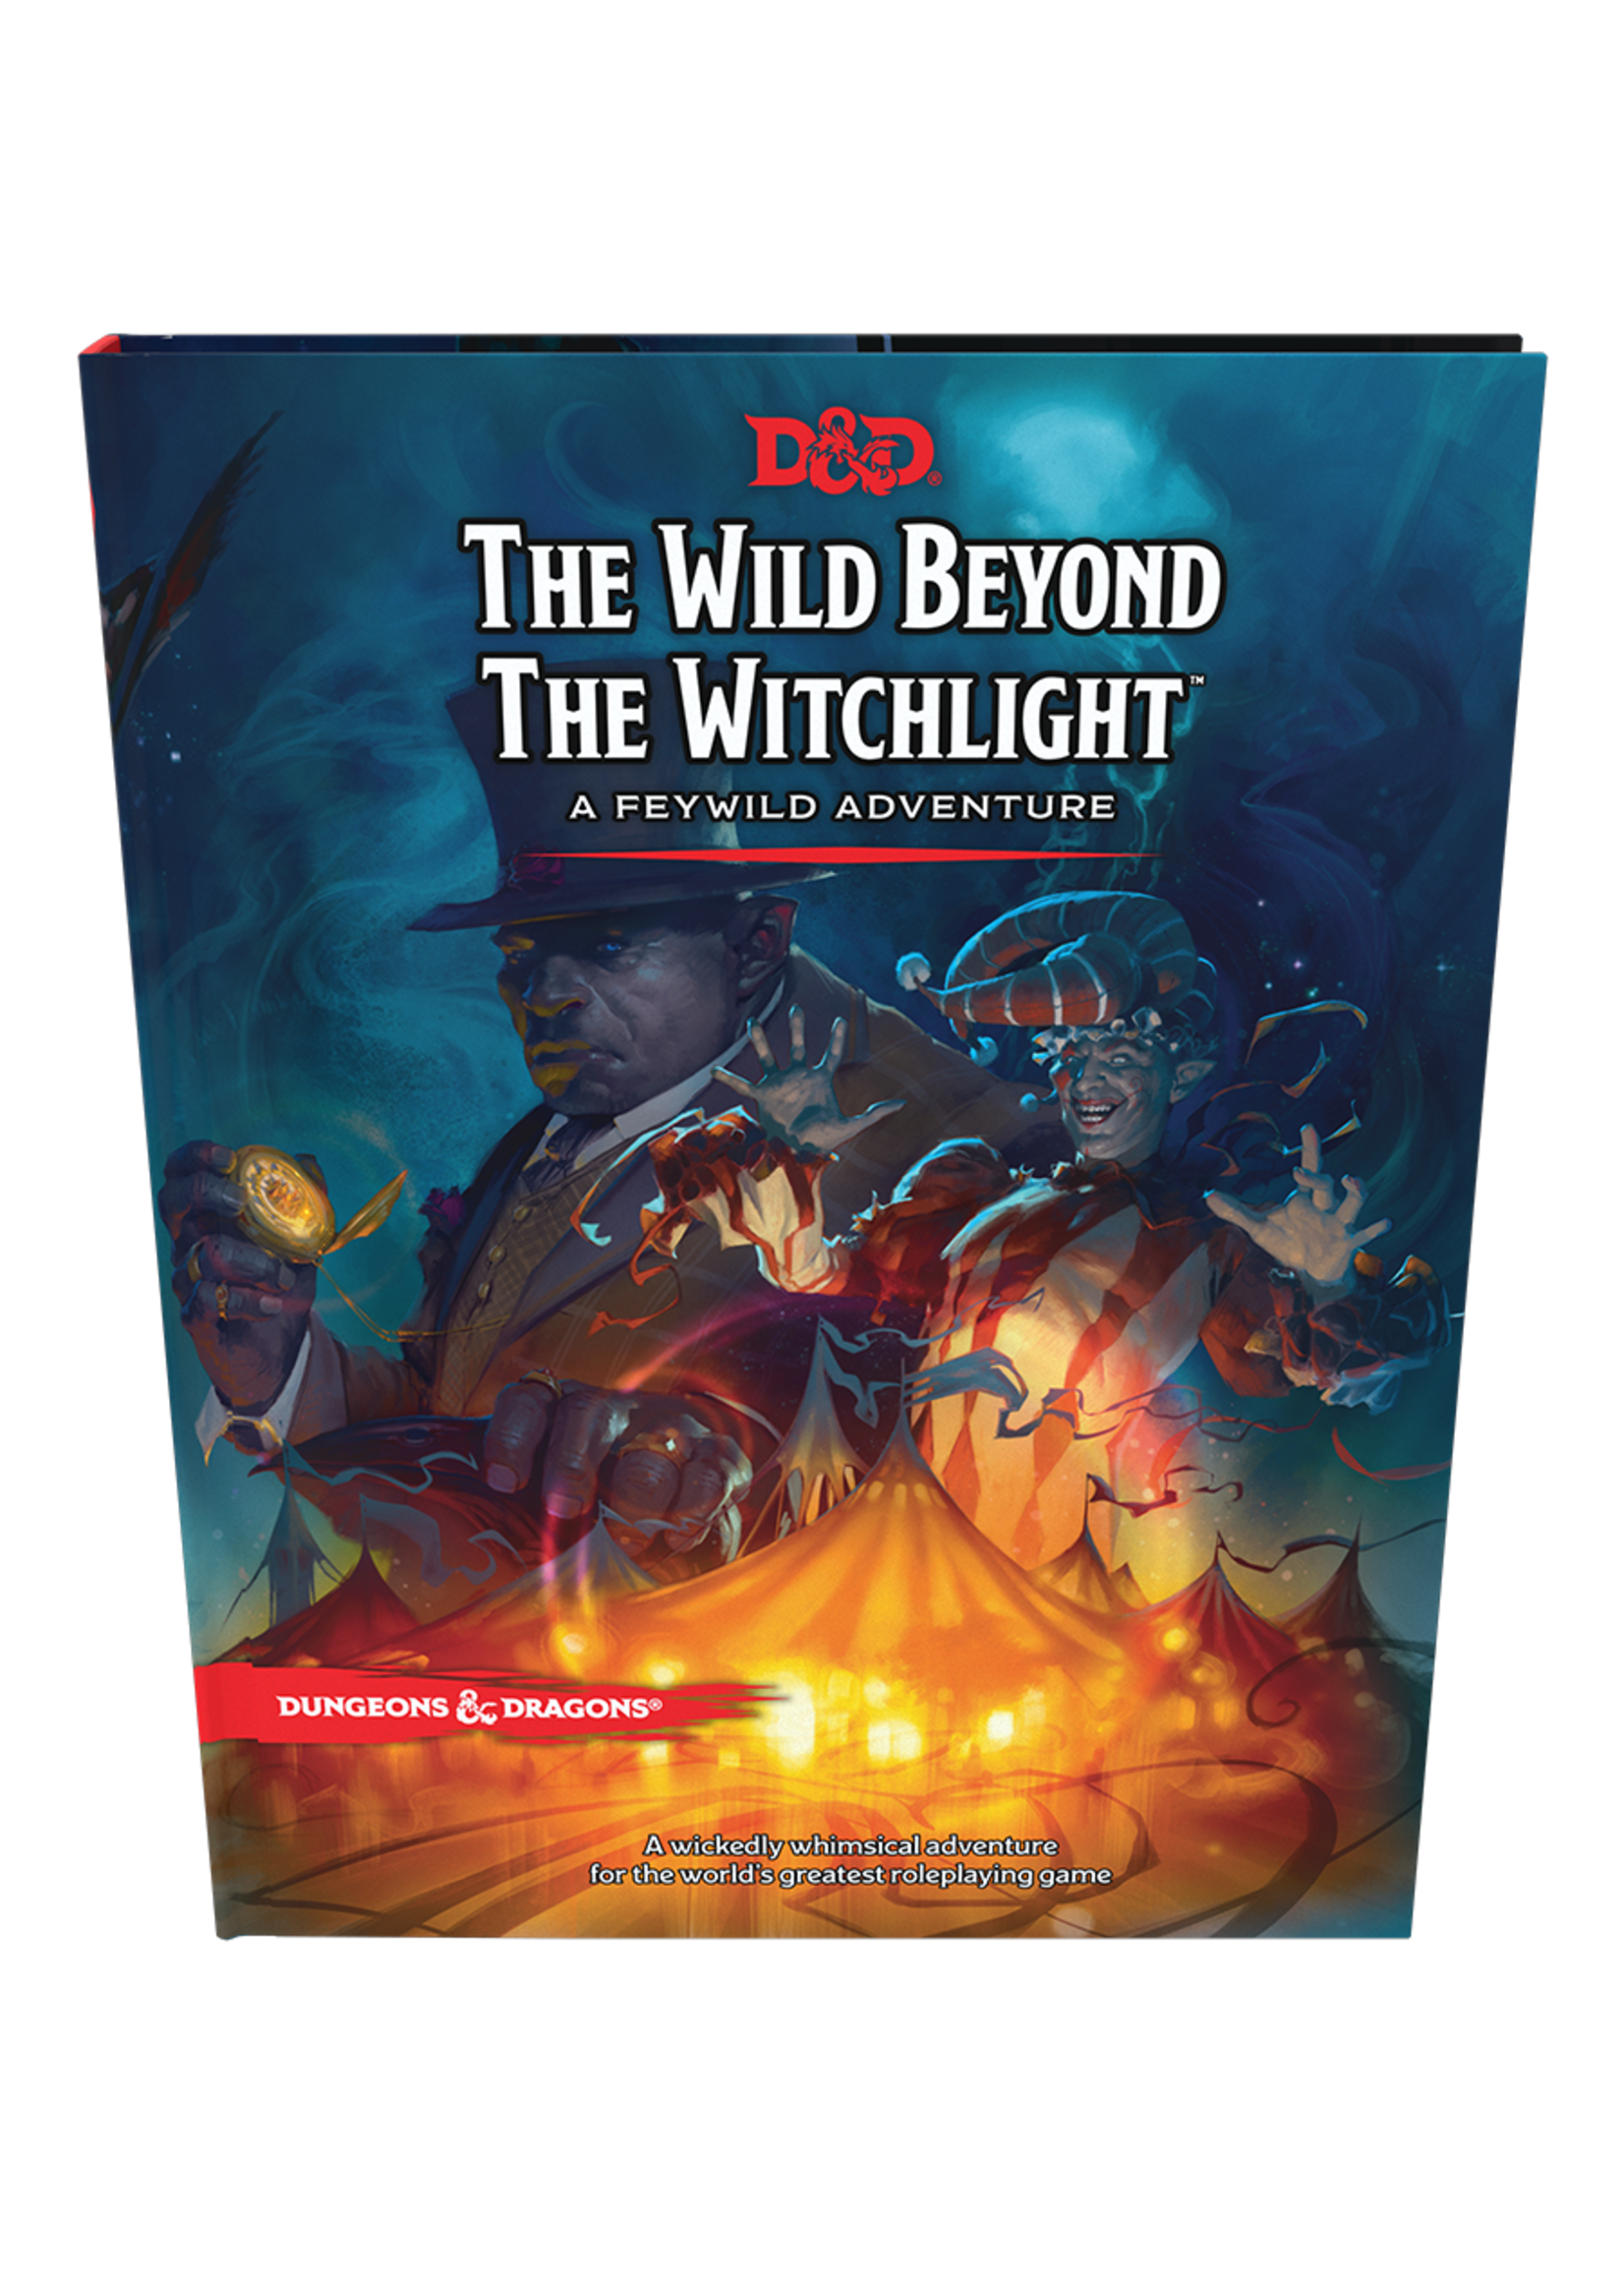 Dungeons & Dragons The Wild Beyond the Witchlight - A Feywild Adventure